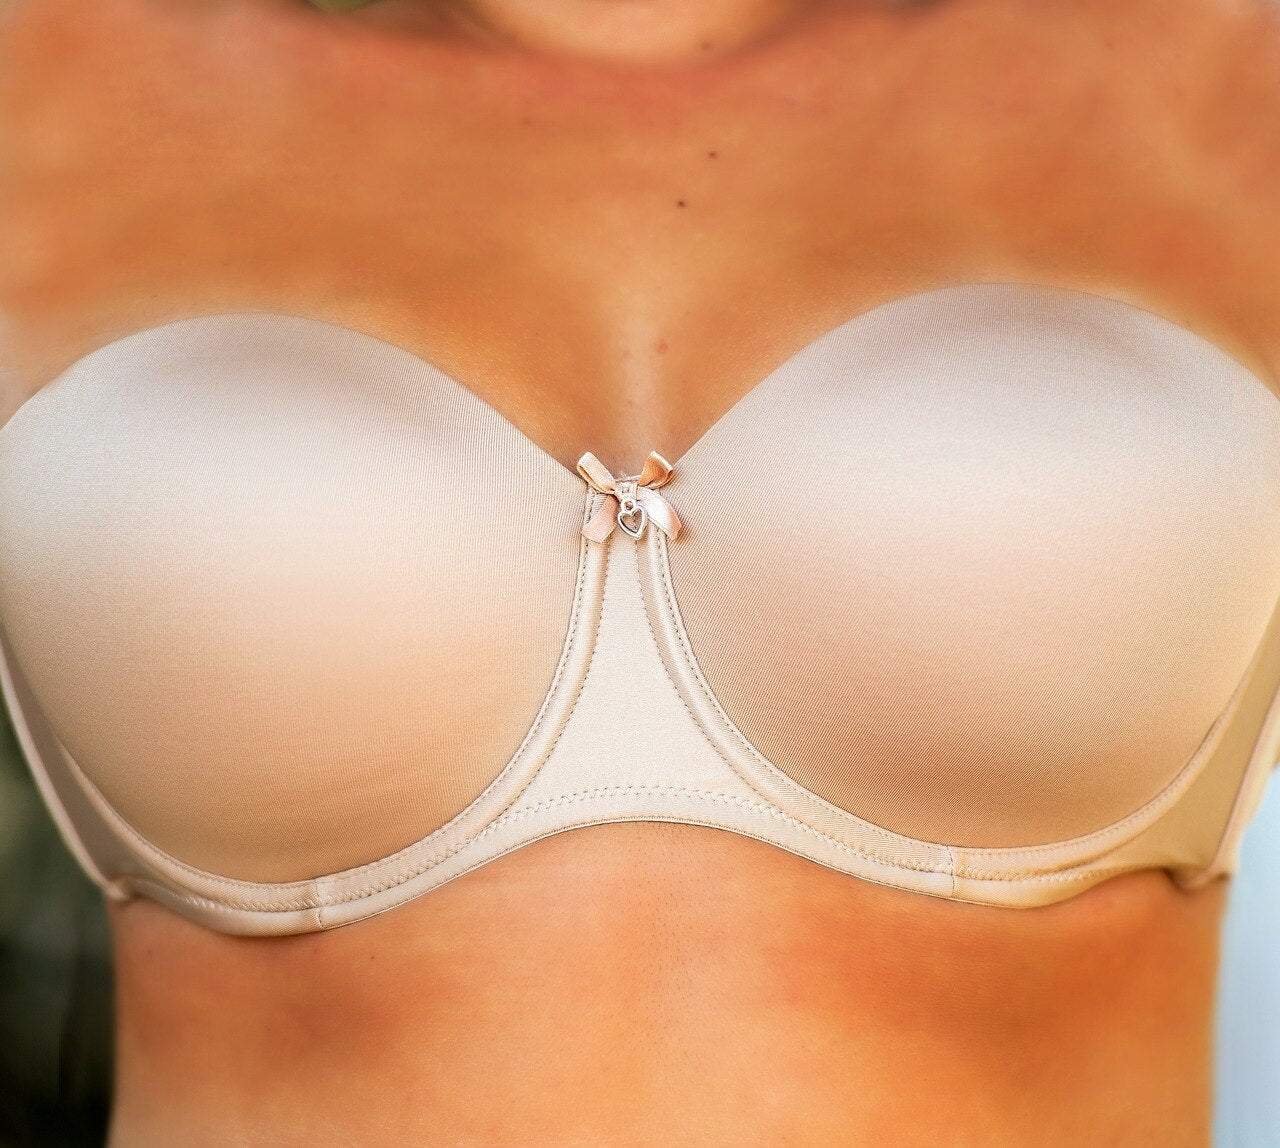 Load image into Gallery viewer, Pure Perfection Strapless Bra - Nude